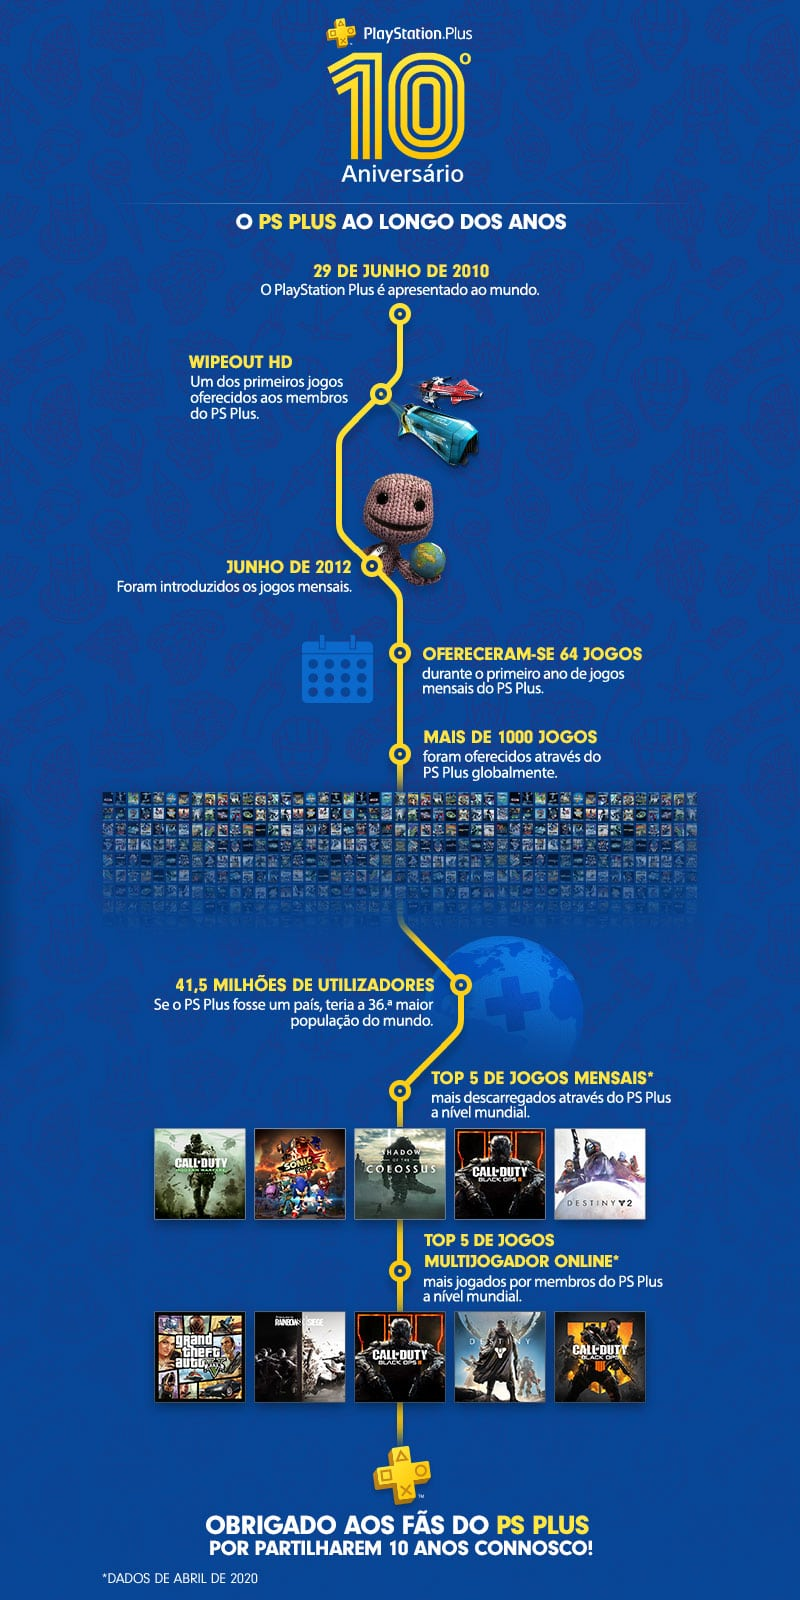 PlayStation Plus - 10 anos